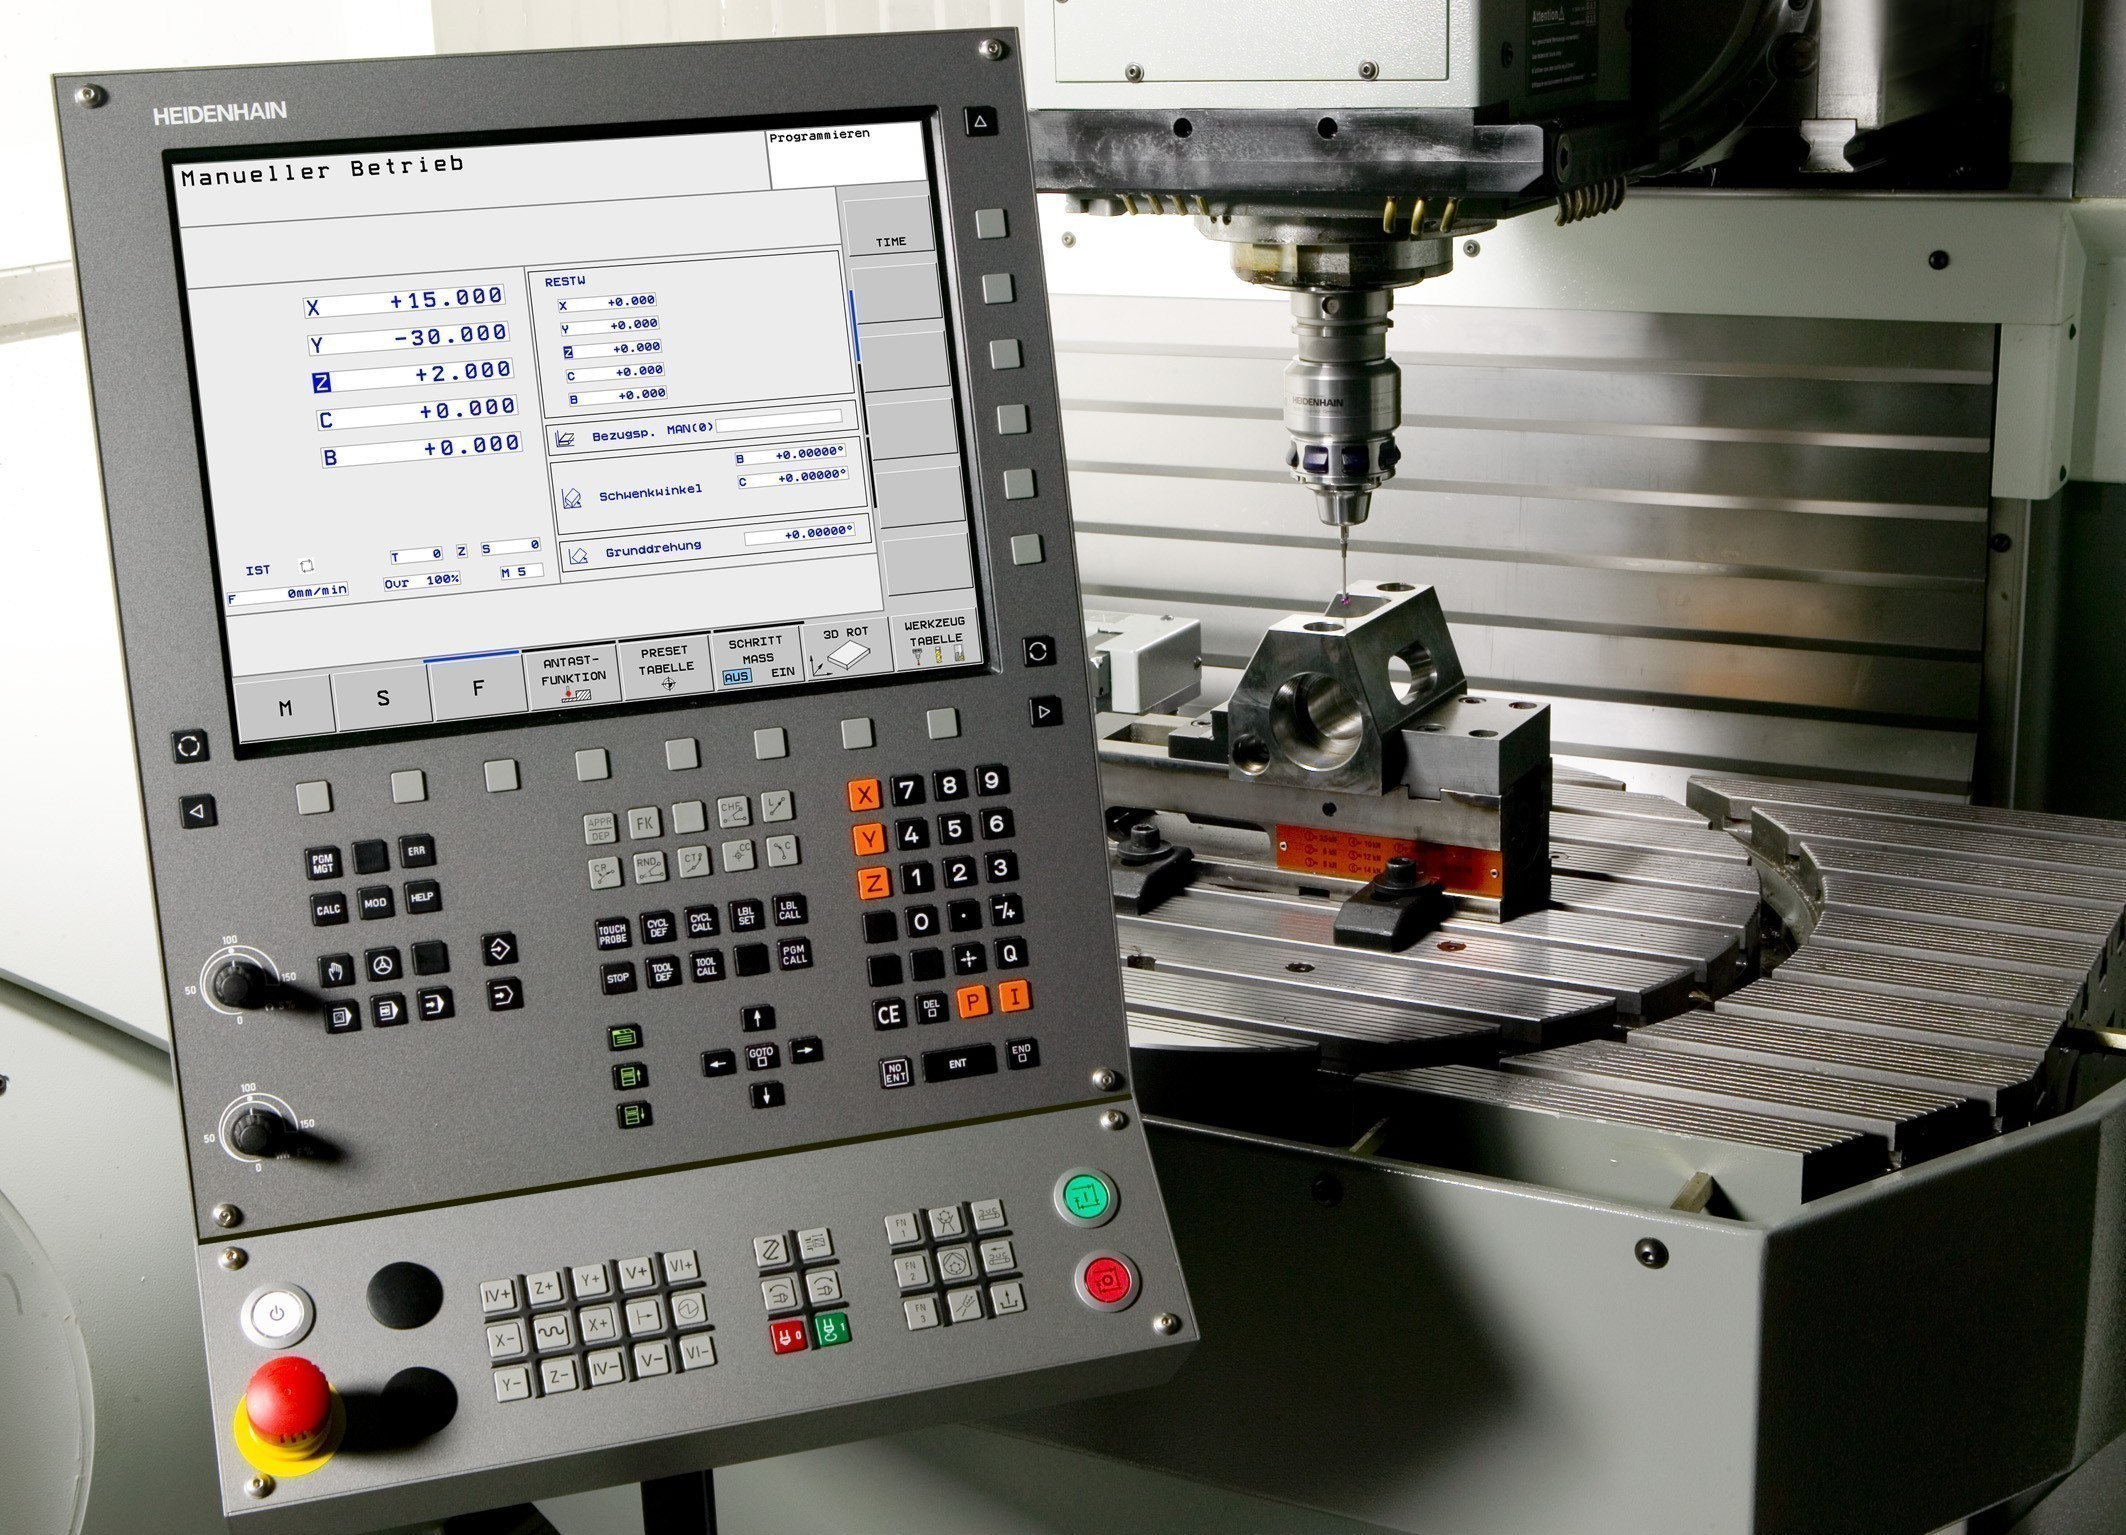 Heidenhain Show Places Machine Tool Accuracy On Center Stage